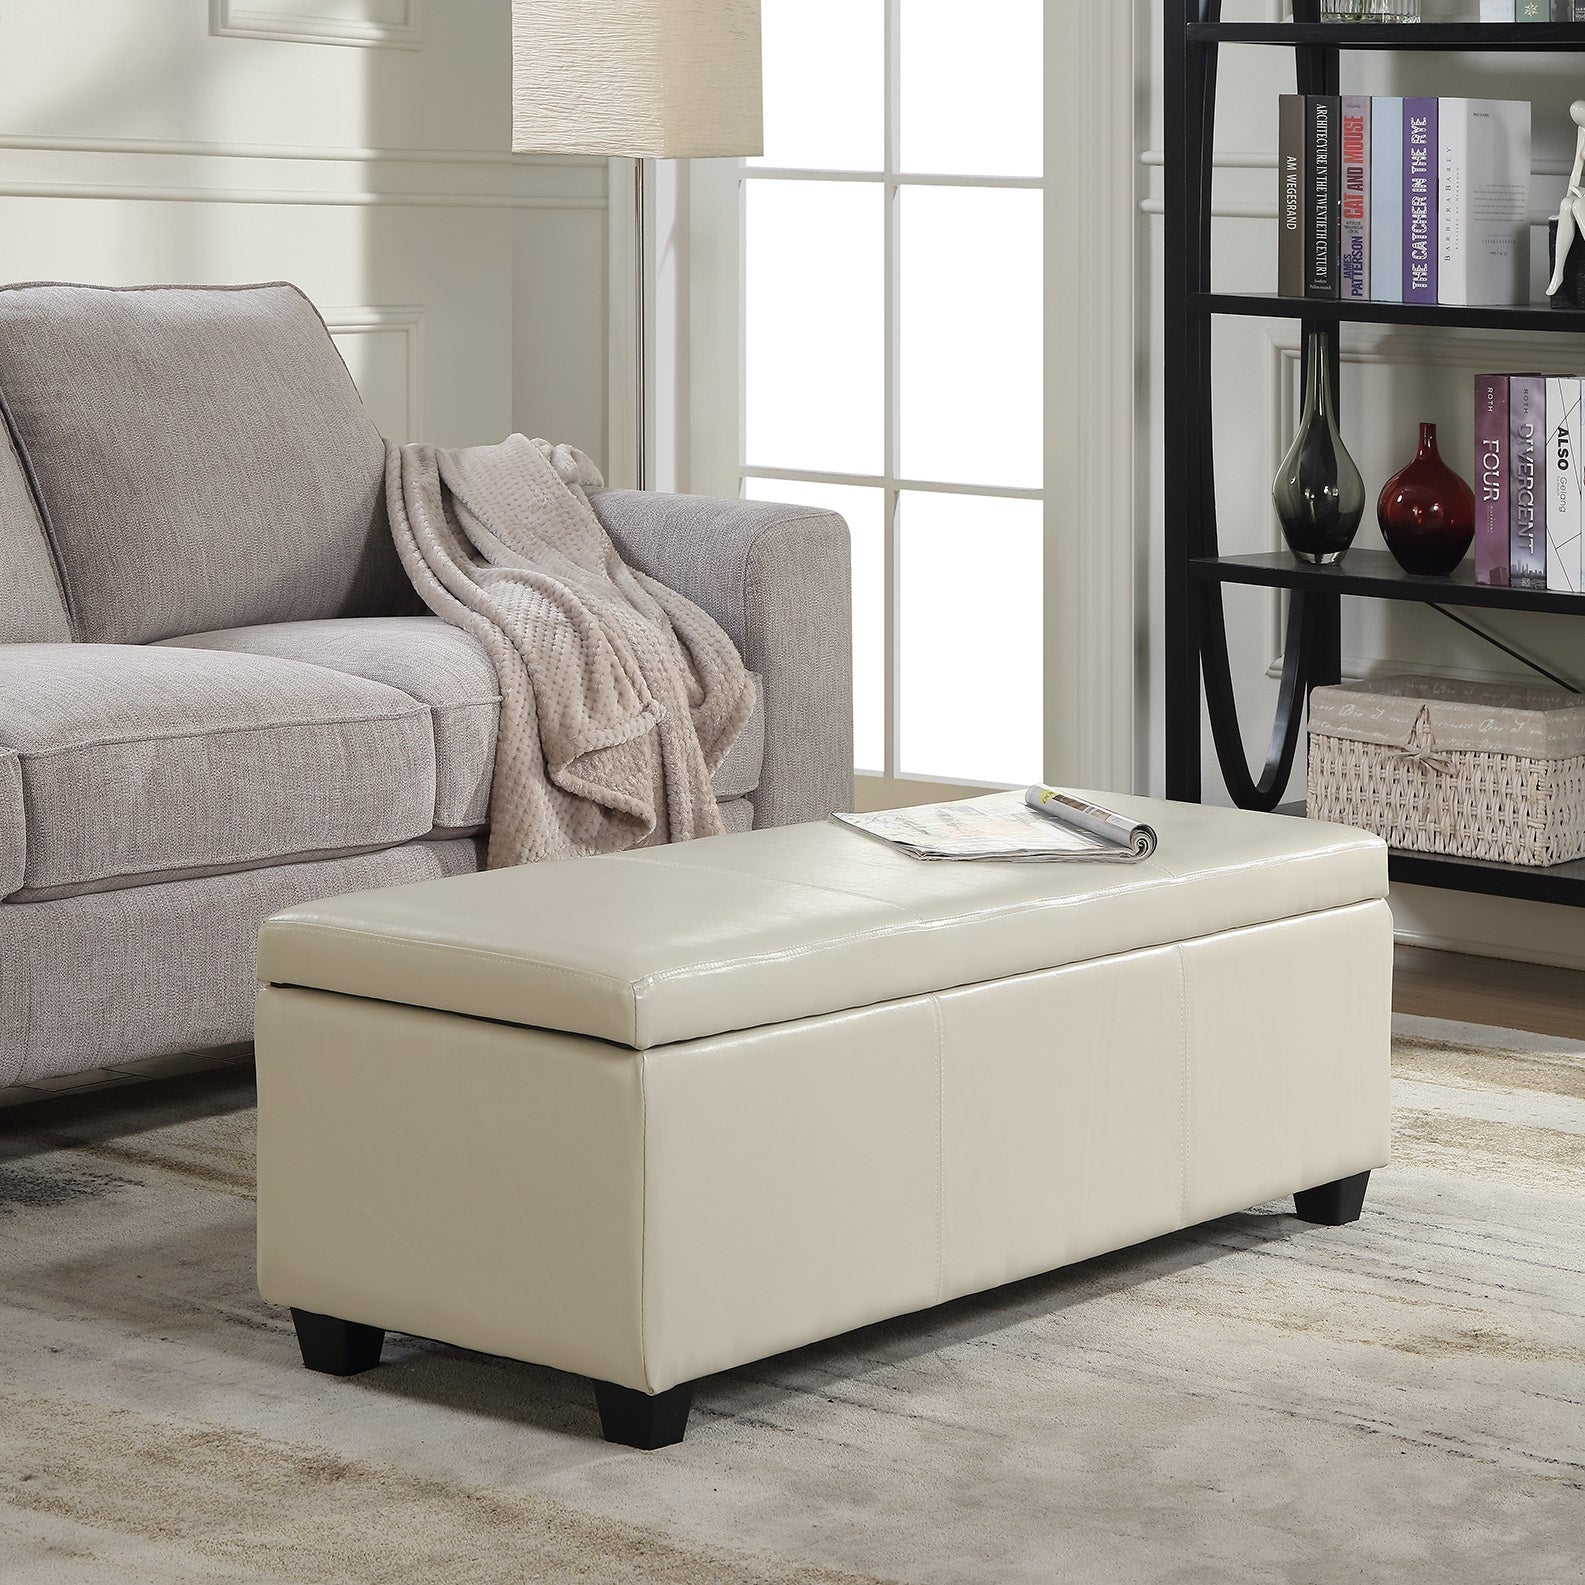 Shop Belleze Ottoman Storage Bench Room Home Faux Leather 48 Inch Cream Standard On Sale Overstock 15942576